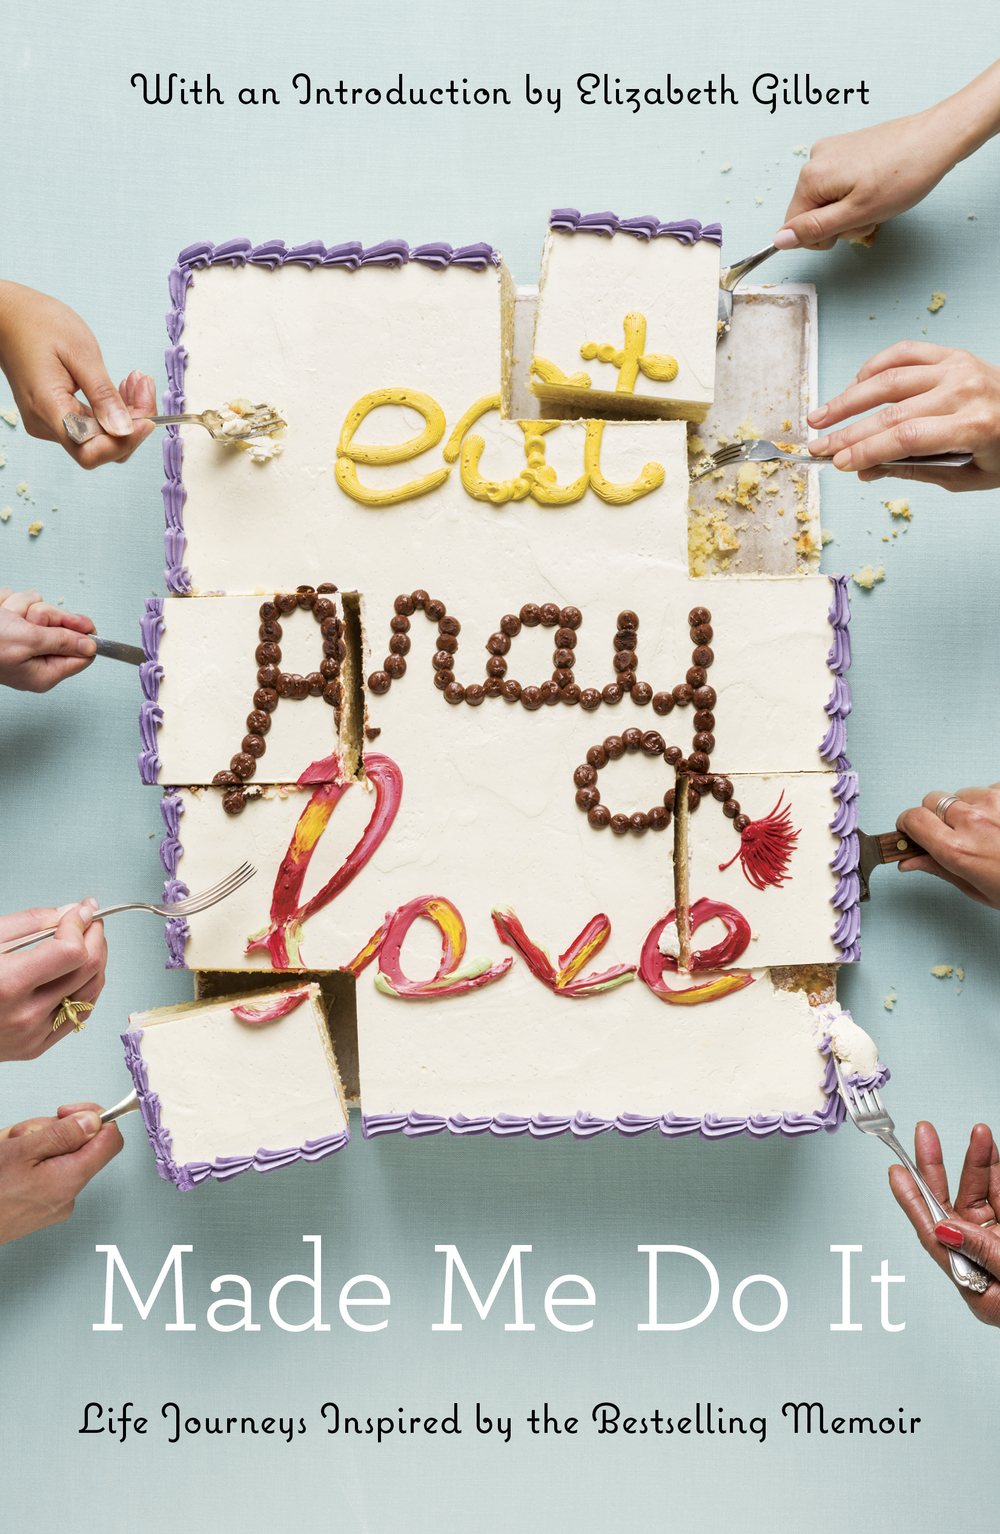 a review of eat pray love a novel by elizabeth gilbert The nook book (ebook) of the eat, pray, love by elizabeth gilbert at barnes & noble free shipping on $25 or more.